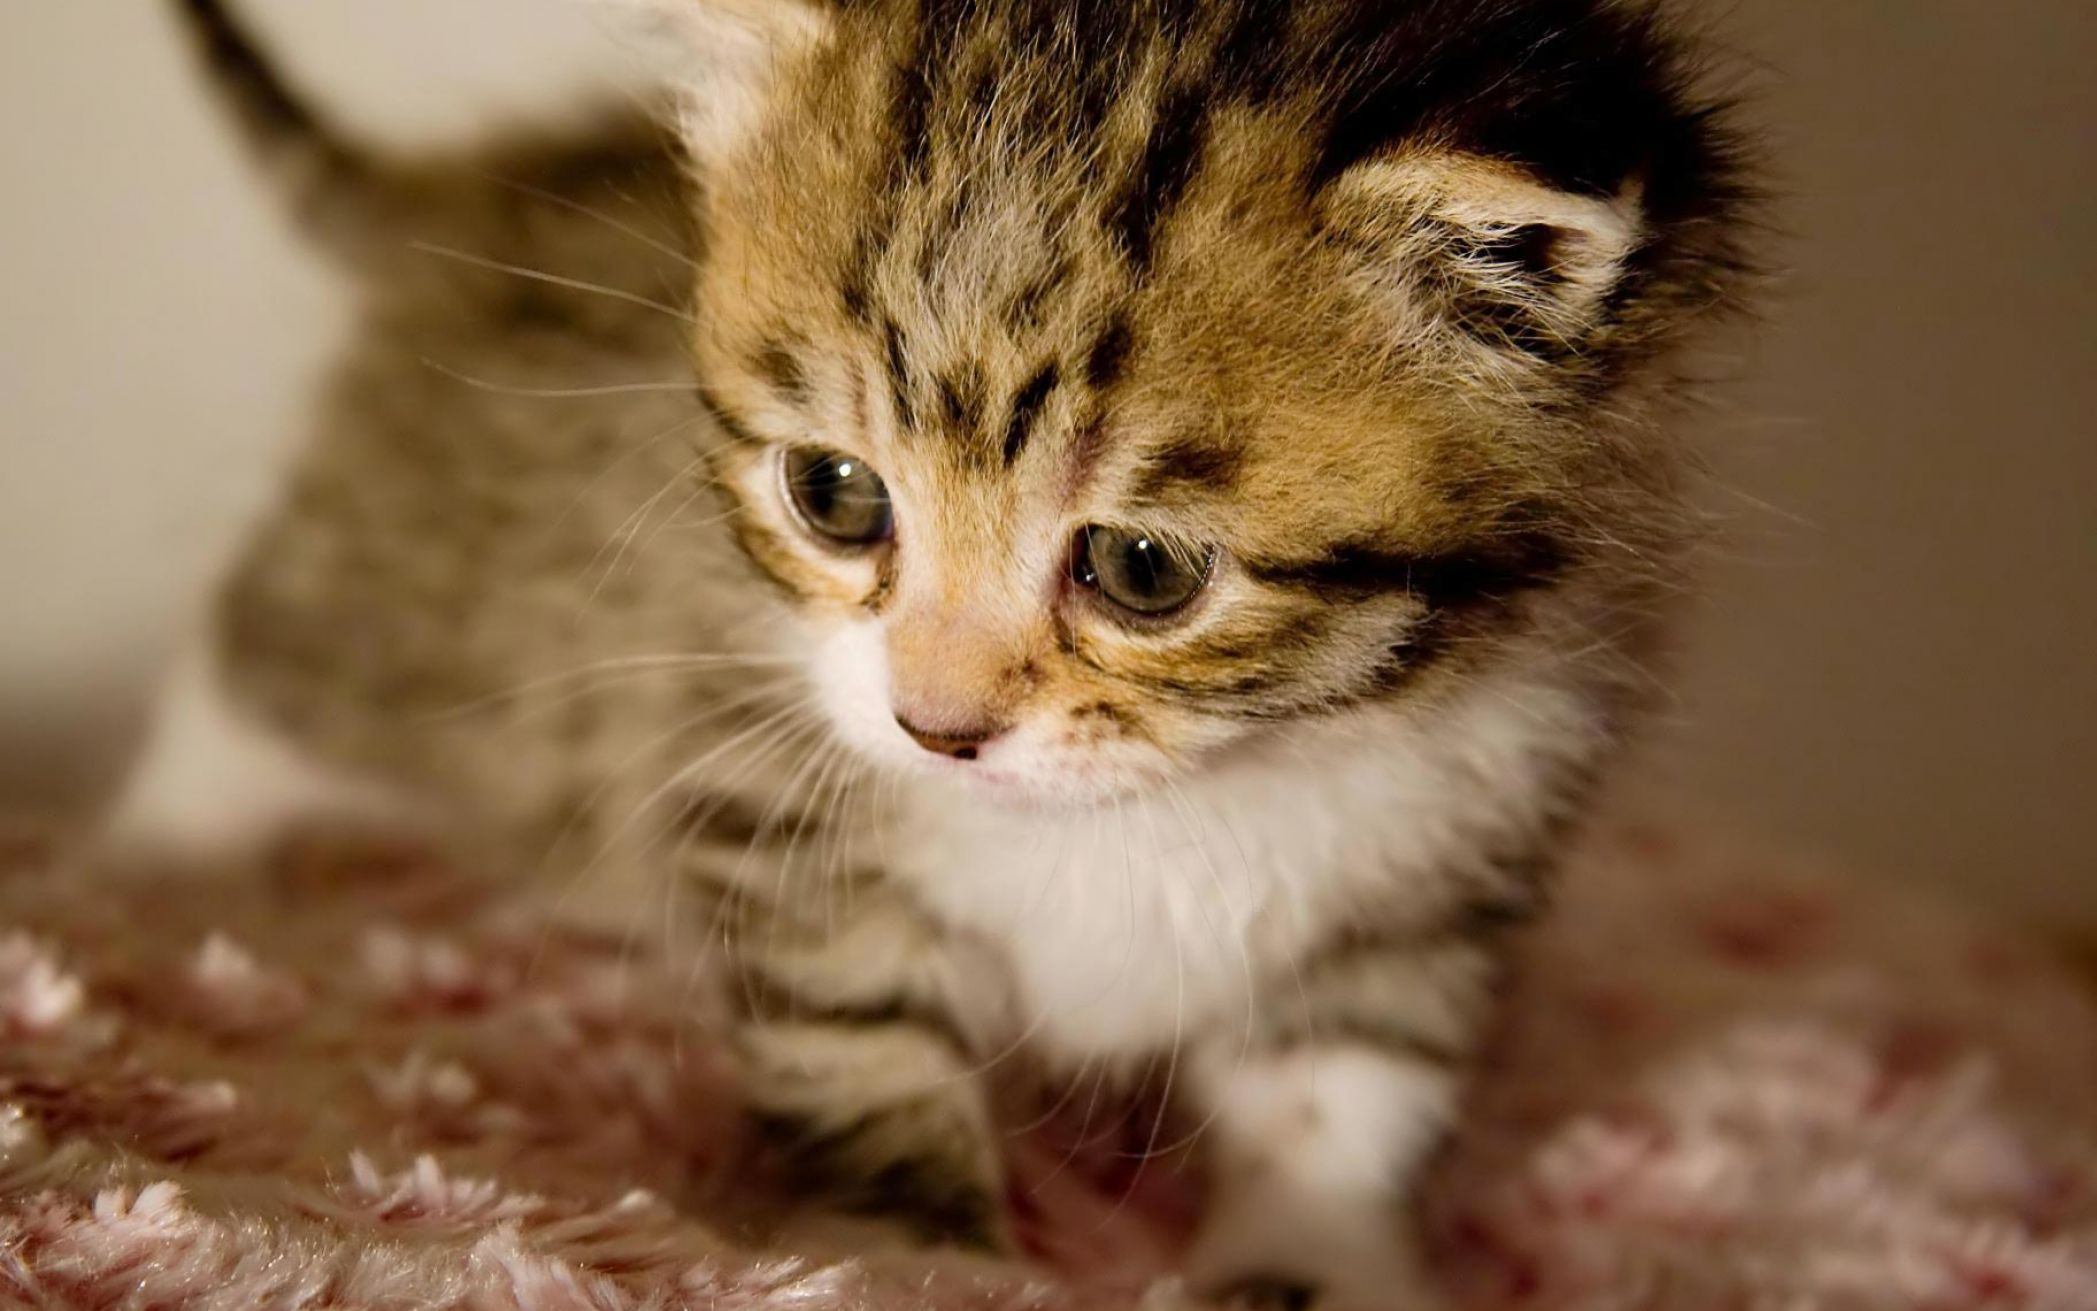 Cute baby kittens wallpapers pictures 2 2097x1311